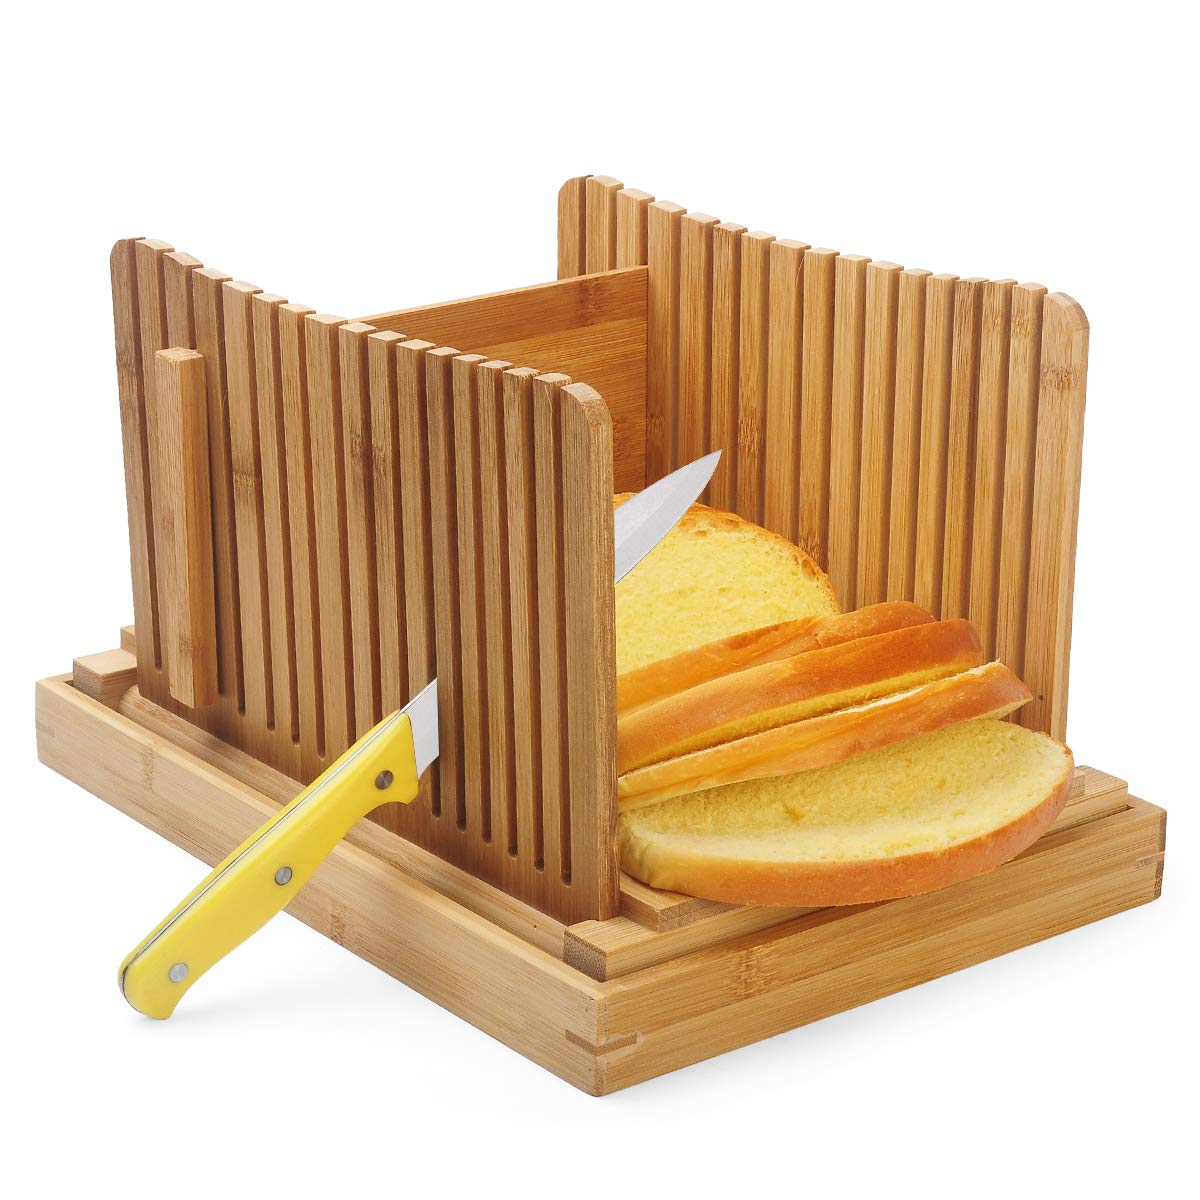 AKUNSZ Bamboo Bread Slicer Guide with Crumb Catcher, Adjustable Bread Loaf Slicer Foldable Bread Cutter Slicer - Thickness Adjustable 1/4'',3/8'',1/2''(Assembled Size 5.5''x9.3''x7'') by AKUNSZ (Image #2)